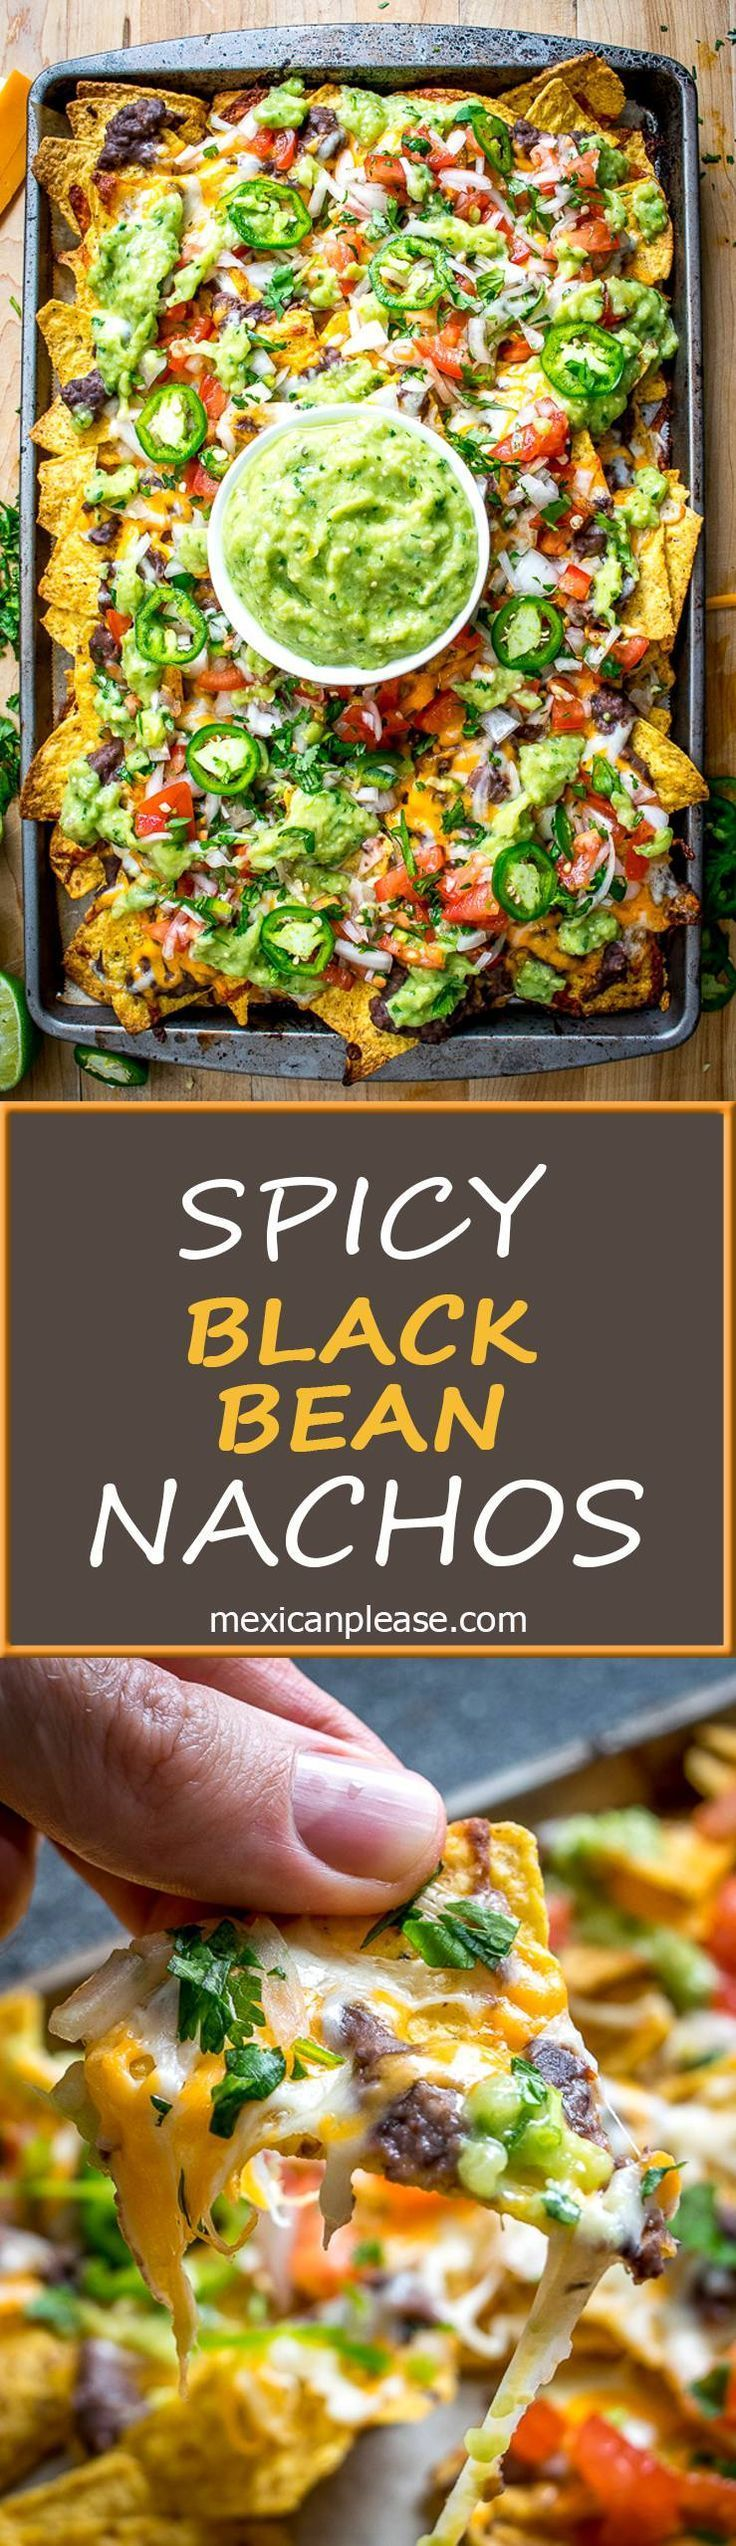 It's tough to beat the combo of warm tortilla chips, melted cheese, and spicy black beans.  In other words, NACHOS!!  These beans have some kick built into them from chipotles in adobo and they are beyond delicious.  http://mexicanplease.com